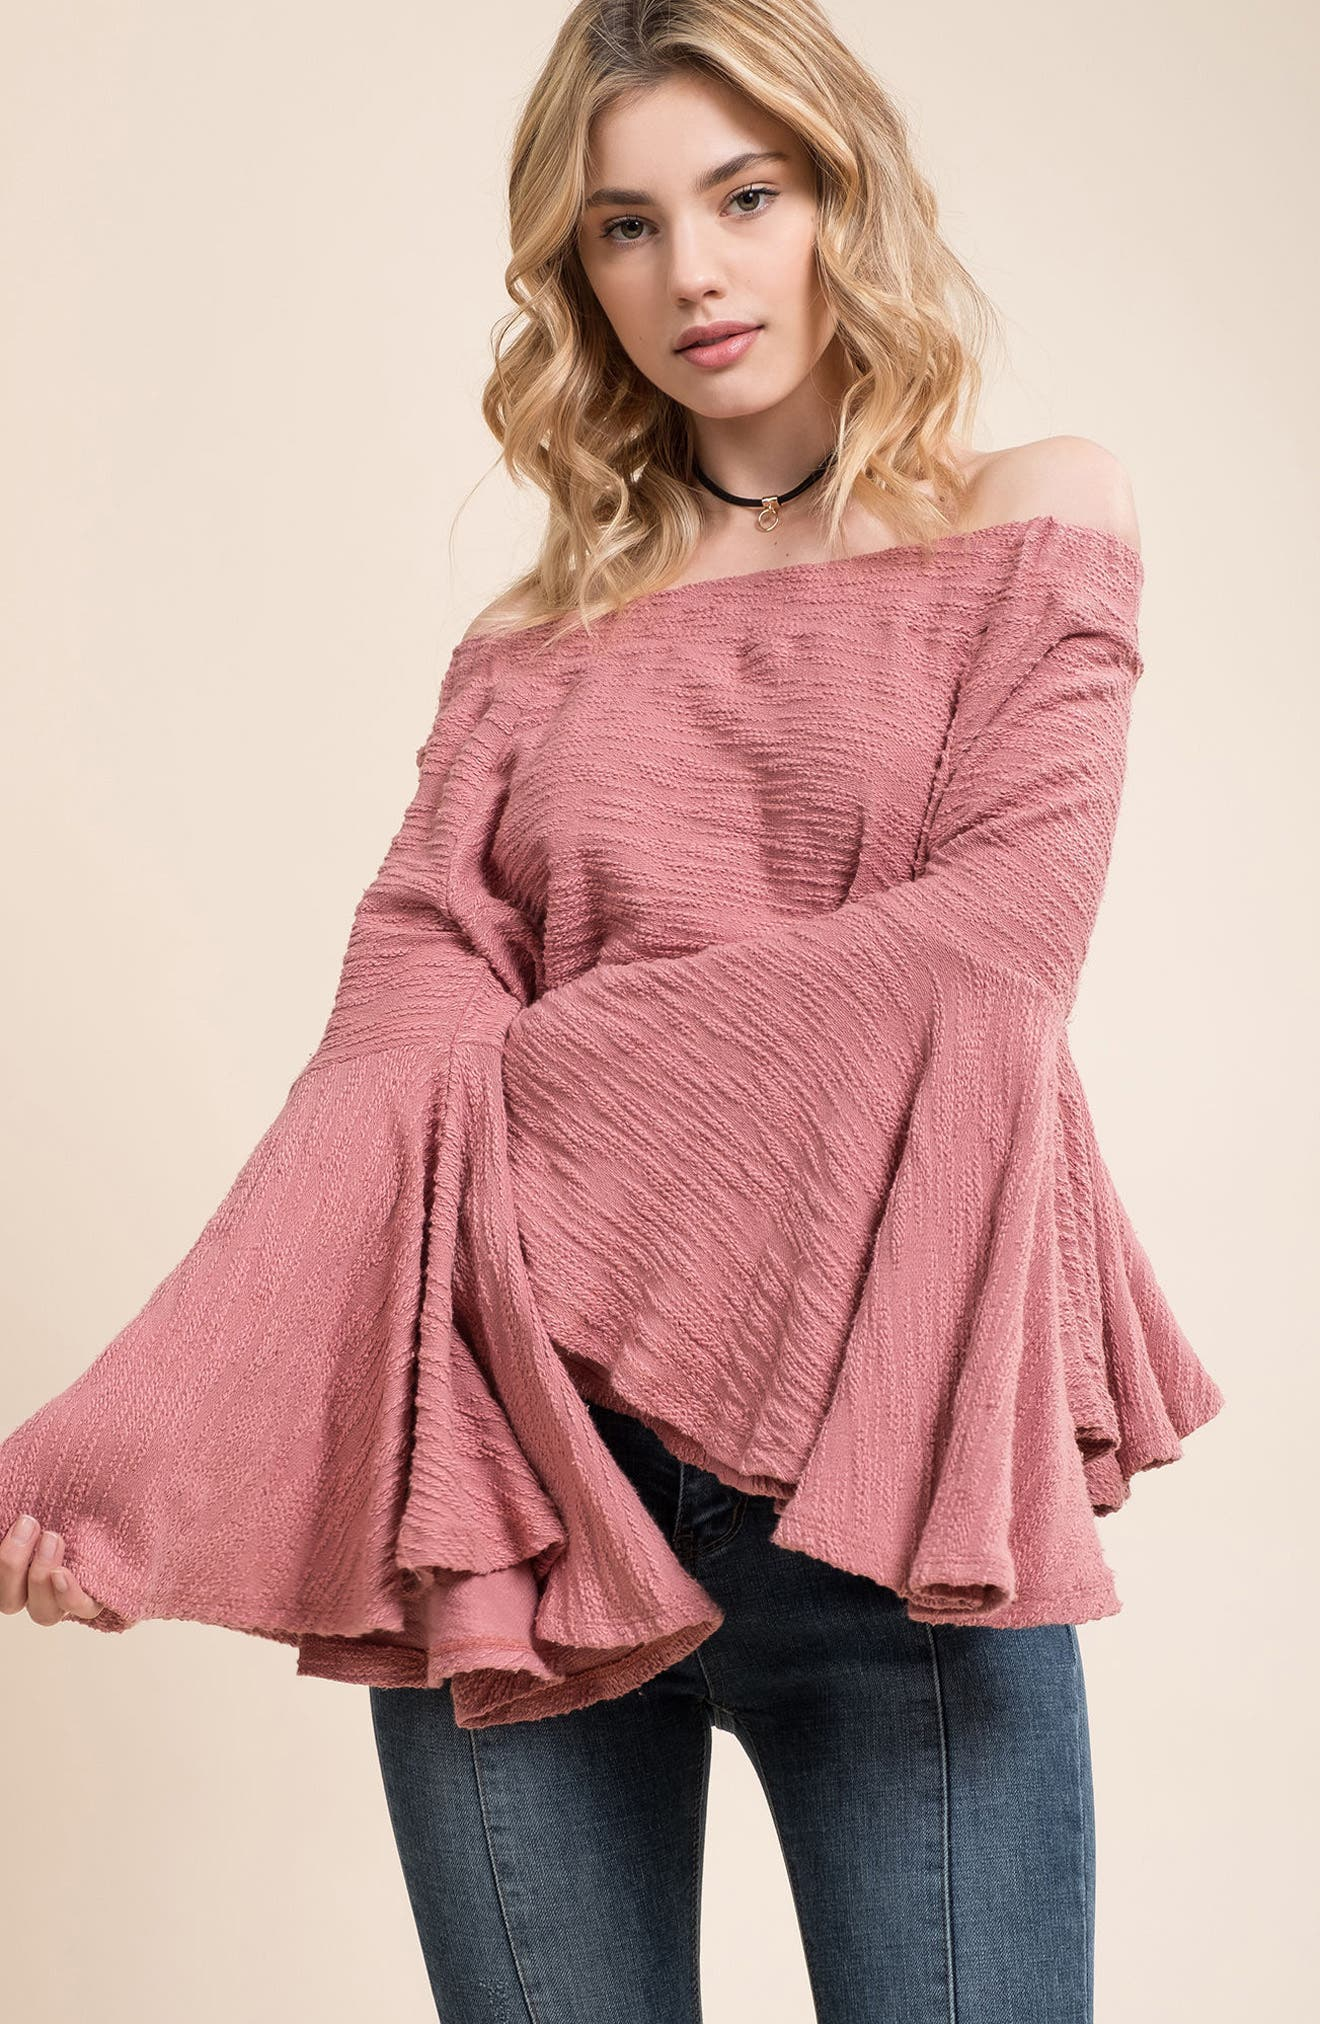 Off the Shoulder Bell Sleeve Top,                             Alternate thumbnail 7, color,                             650